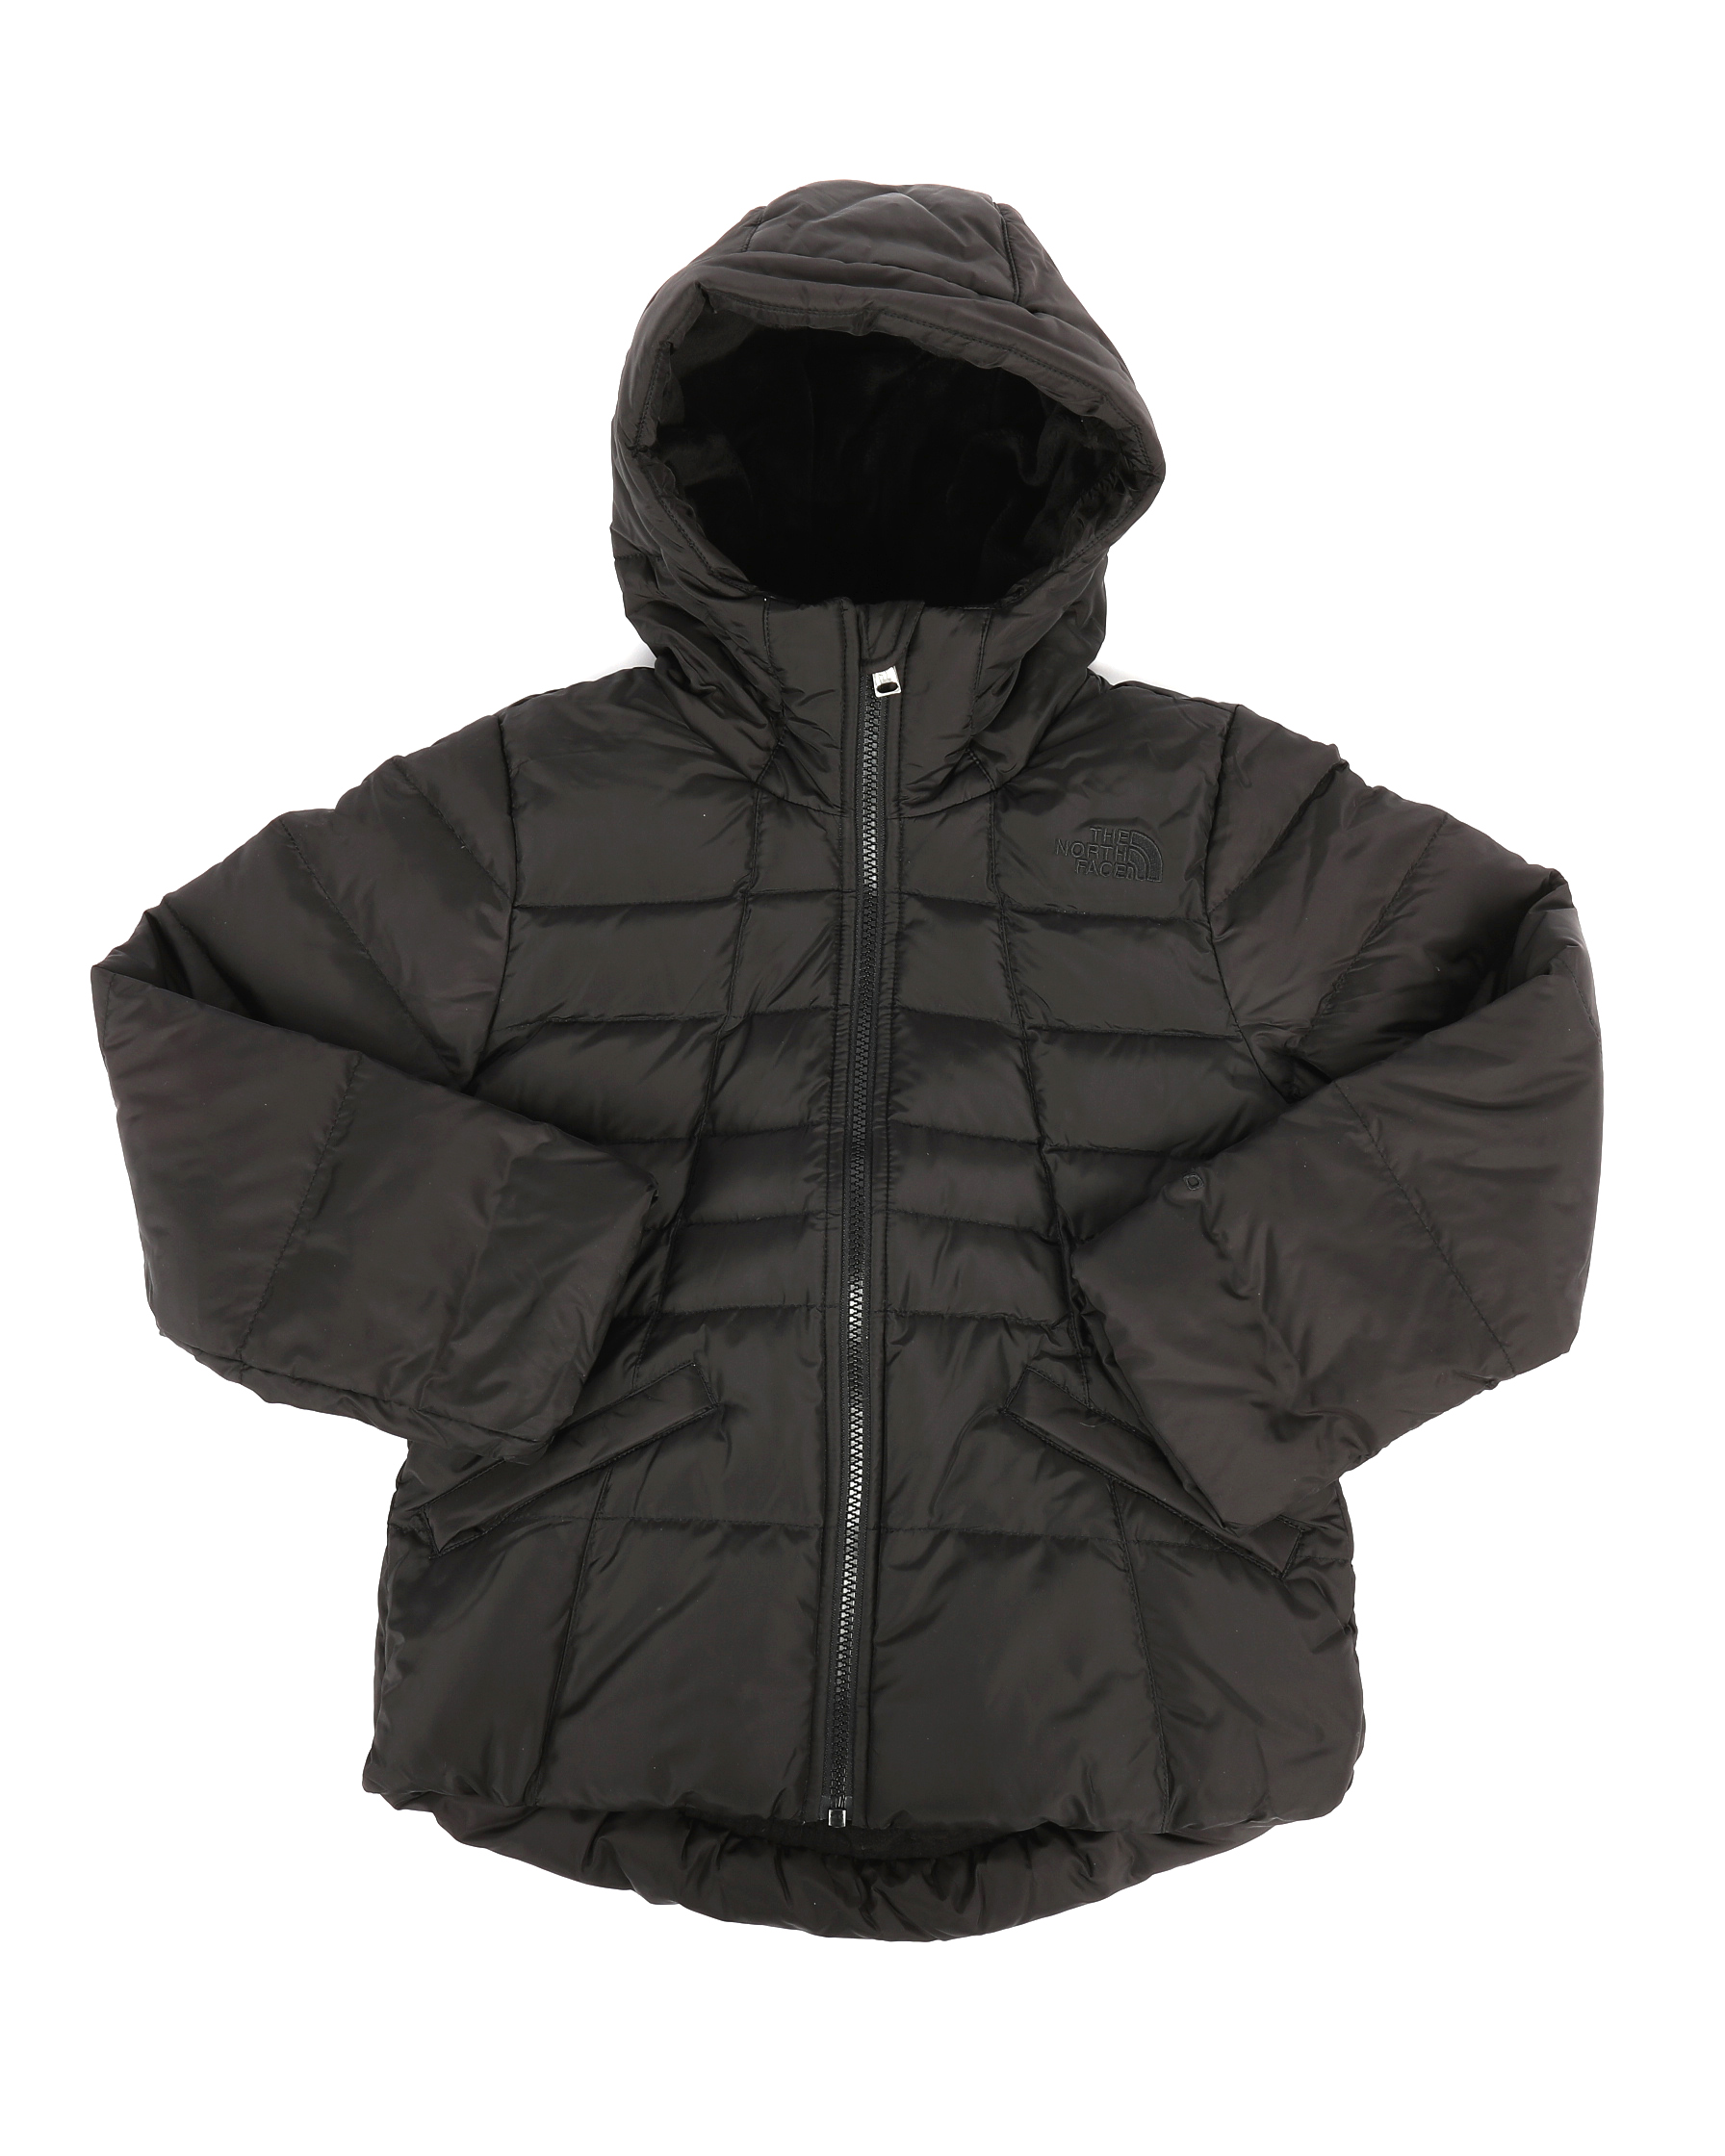 b40c7ec70 Buy Moondoggy 2.0 Down Jacket (7-18) Girls Outerwear from The North ...